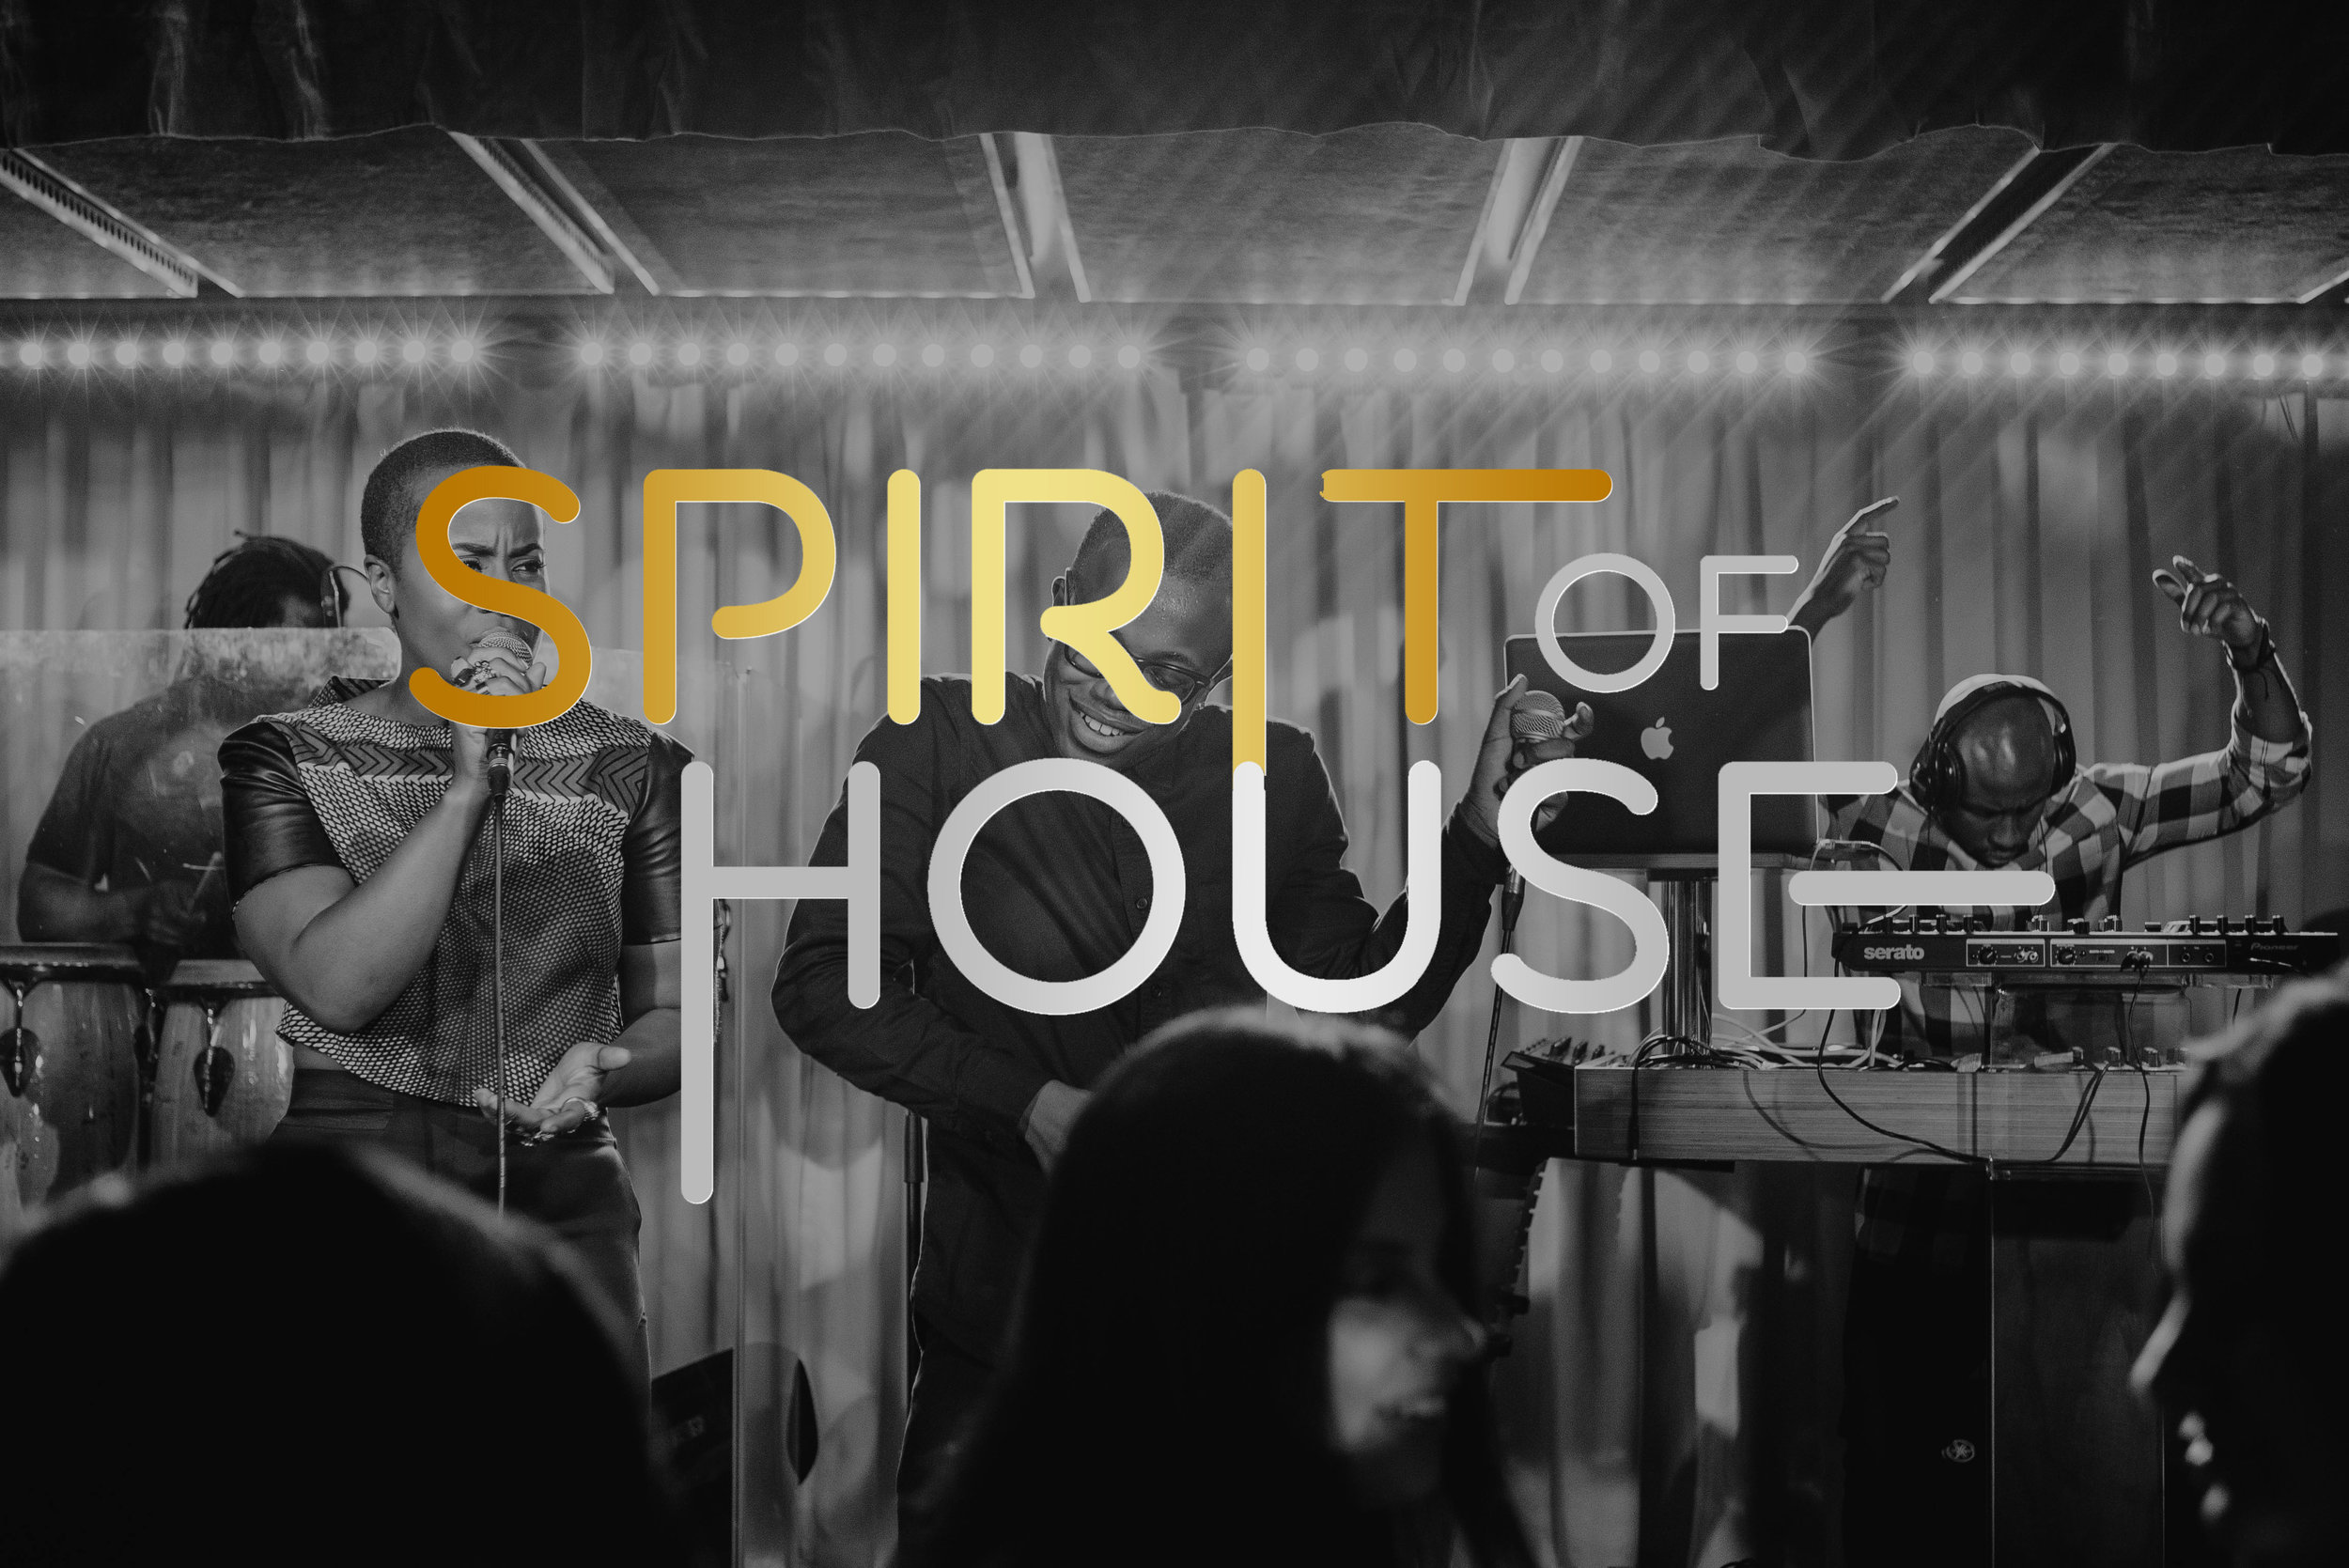 SPIRIT OF HOUSE - A unique movement bringing together some of the UK's top musicians and vocalists delving into the very heart and soul of house music bringing the uplifting and euphoric sounds heard on many a Soulful/Gospel house record pioneered by the likes of Frankie Knuckles, Todd Terry, Dennis Ferrer and more….Led by DJ/Musician Ayce 'The Beat Junkie' (Tinie Tempah, Jessie J, LCGC), Spirit Of House feature the powerhouse vocals and harmonies that have been the very backbone of soulful house music. Whether it's the full 9 piece band or the Percussion, Guitar and Sax setup, Spirit Of House are guaranteed to take you to a higher high on the dance floor!